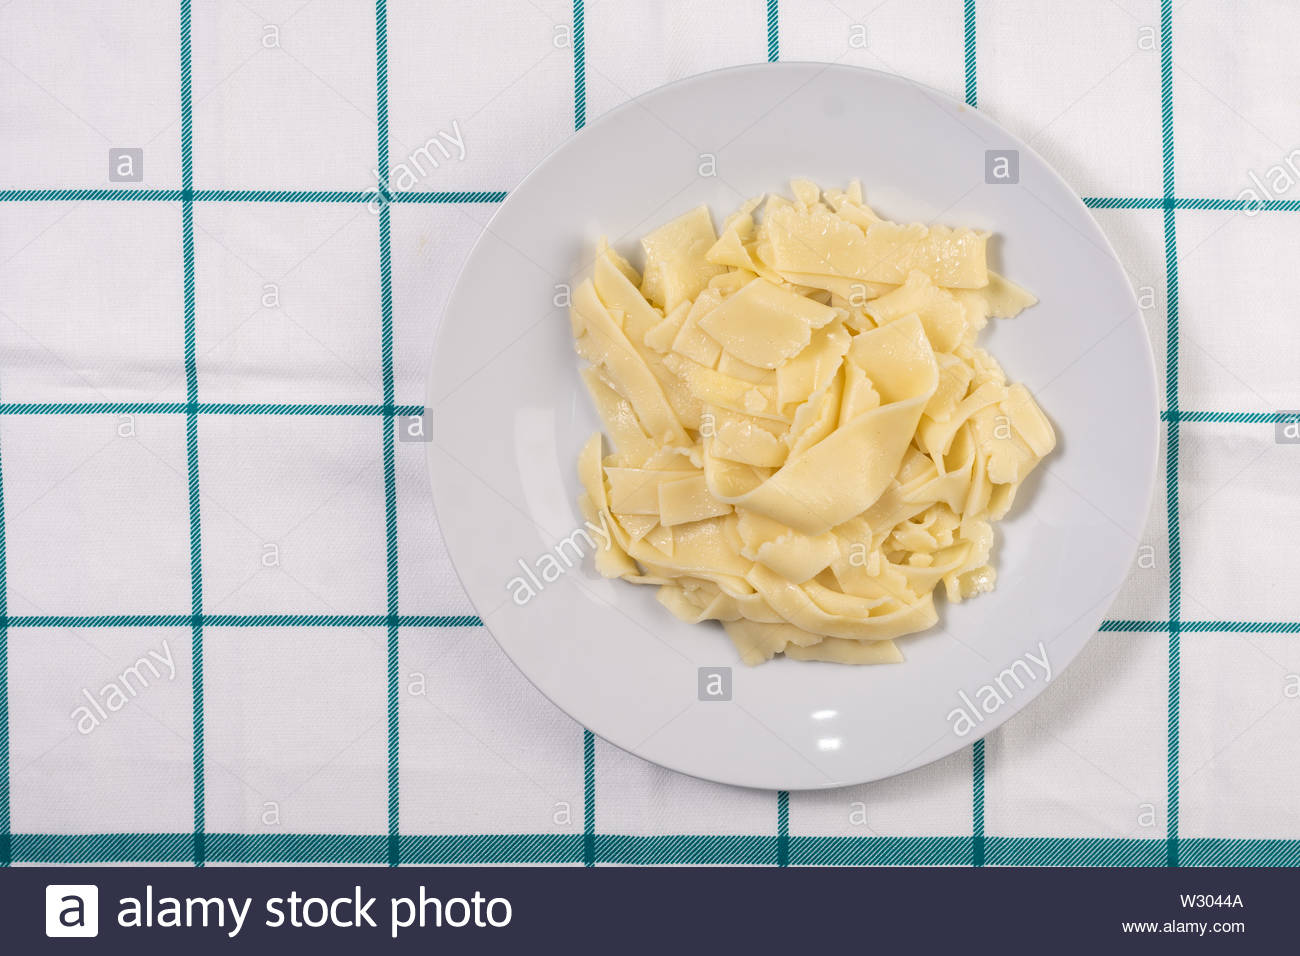 Mashed Potatoes served in the plate on the kitchen table - Stock Image